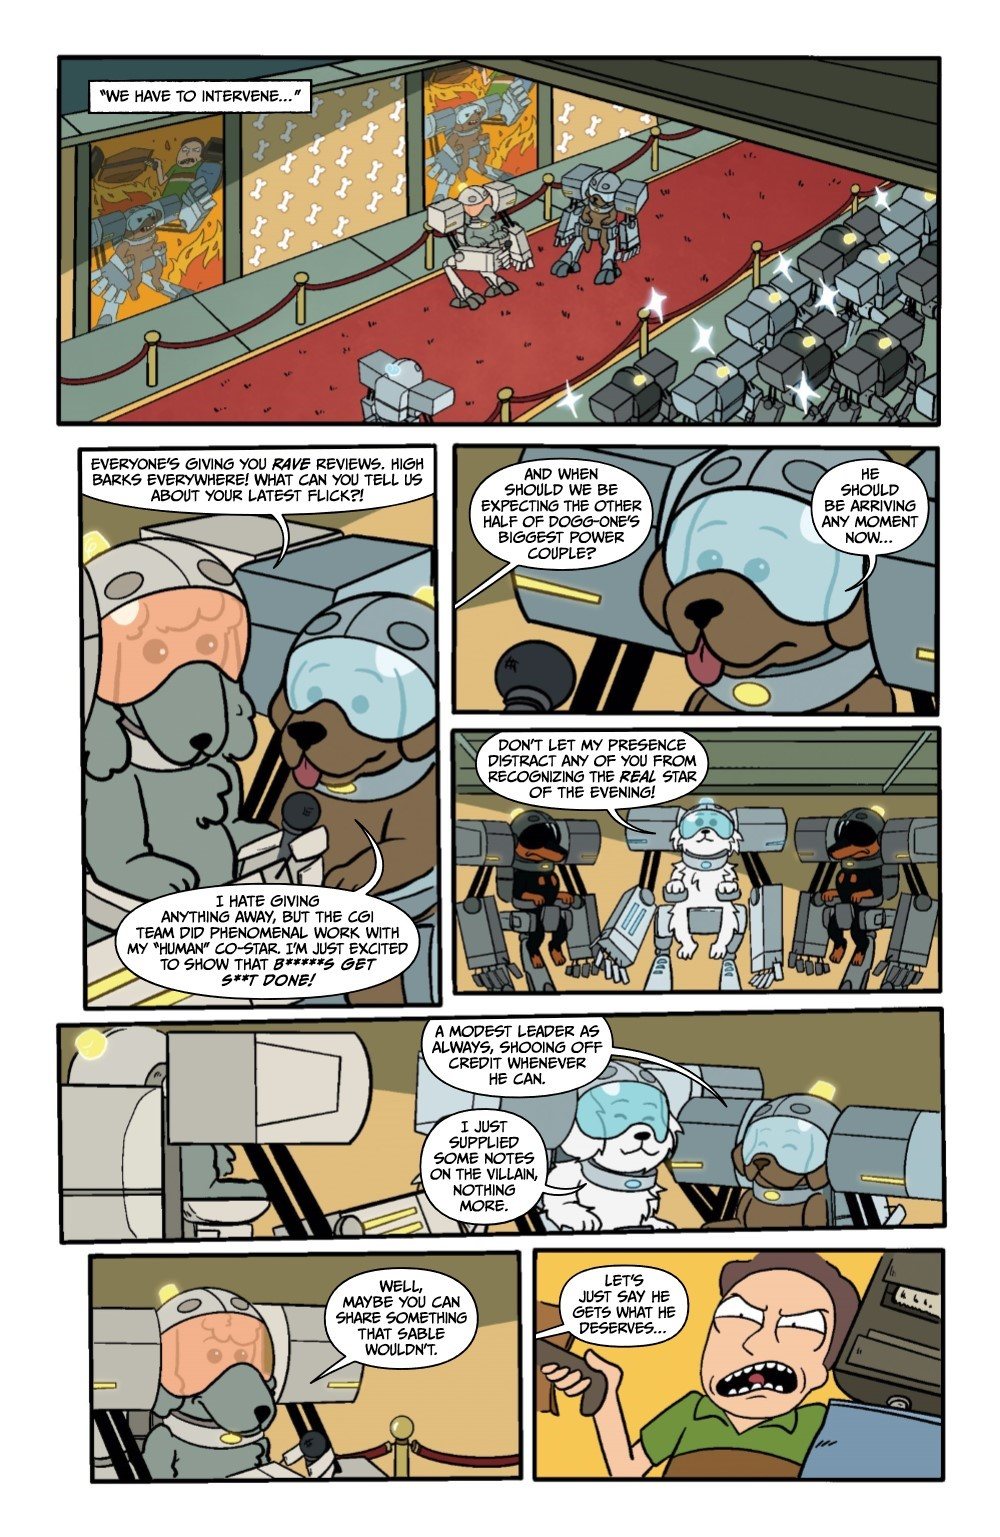 RM-PRES-SNUFFLES-1-REFERENCE-12 ComicList Previews: RICK AND MORTY PRESENTS SNUFFLES GOES TO WAR #1